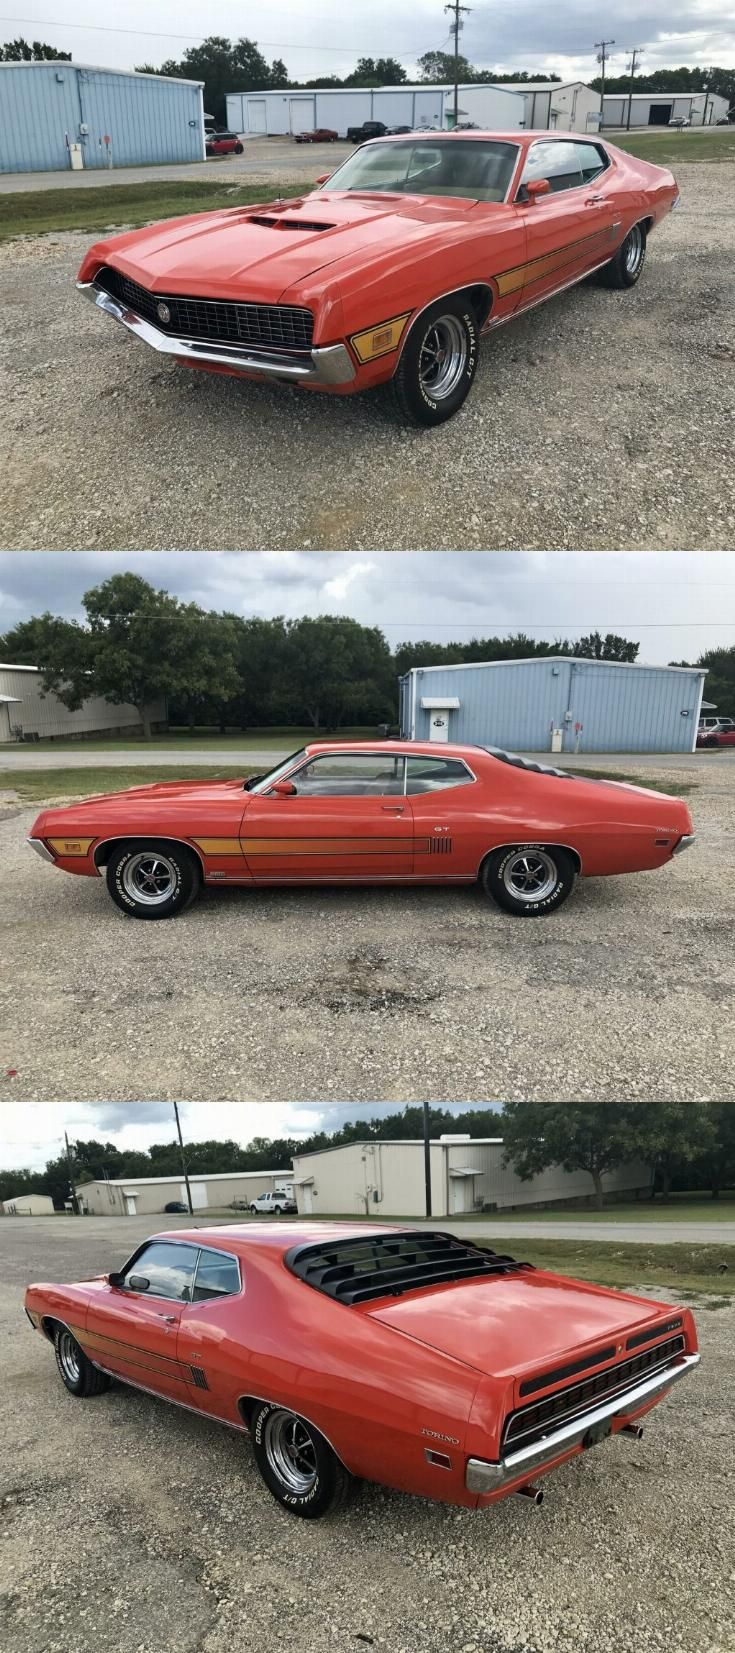 1970 Ford Torino Gt In 2020 Ford Torino Ford Ford Motor